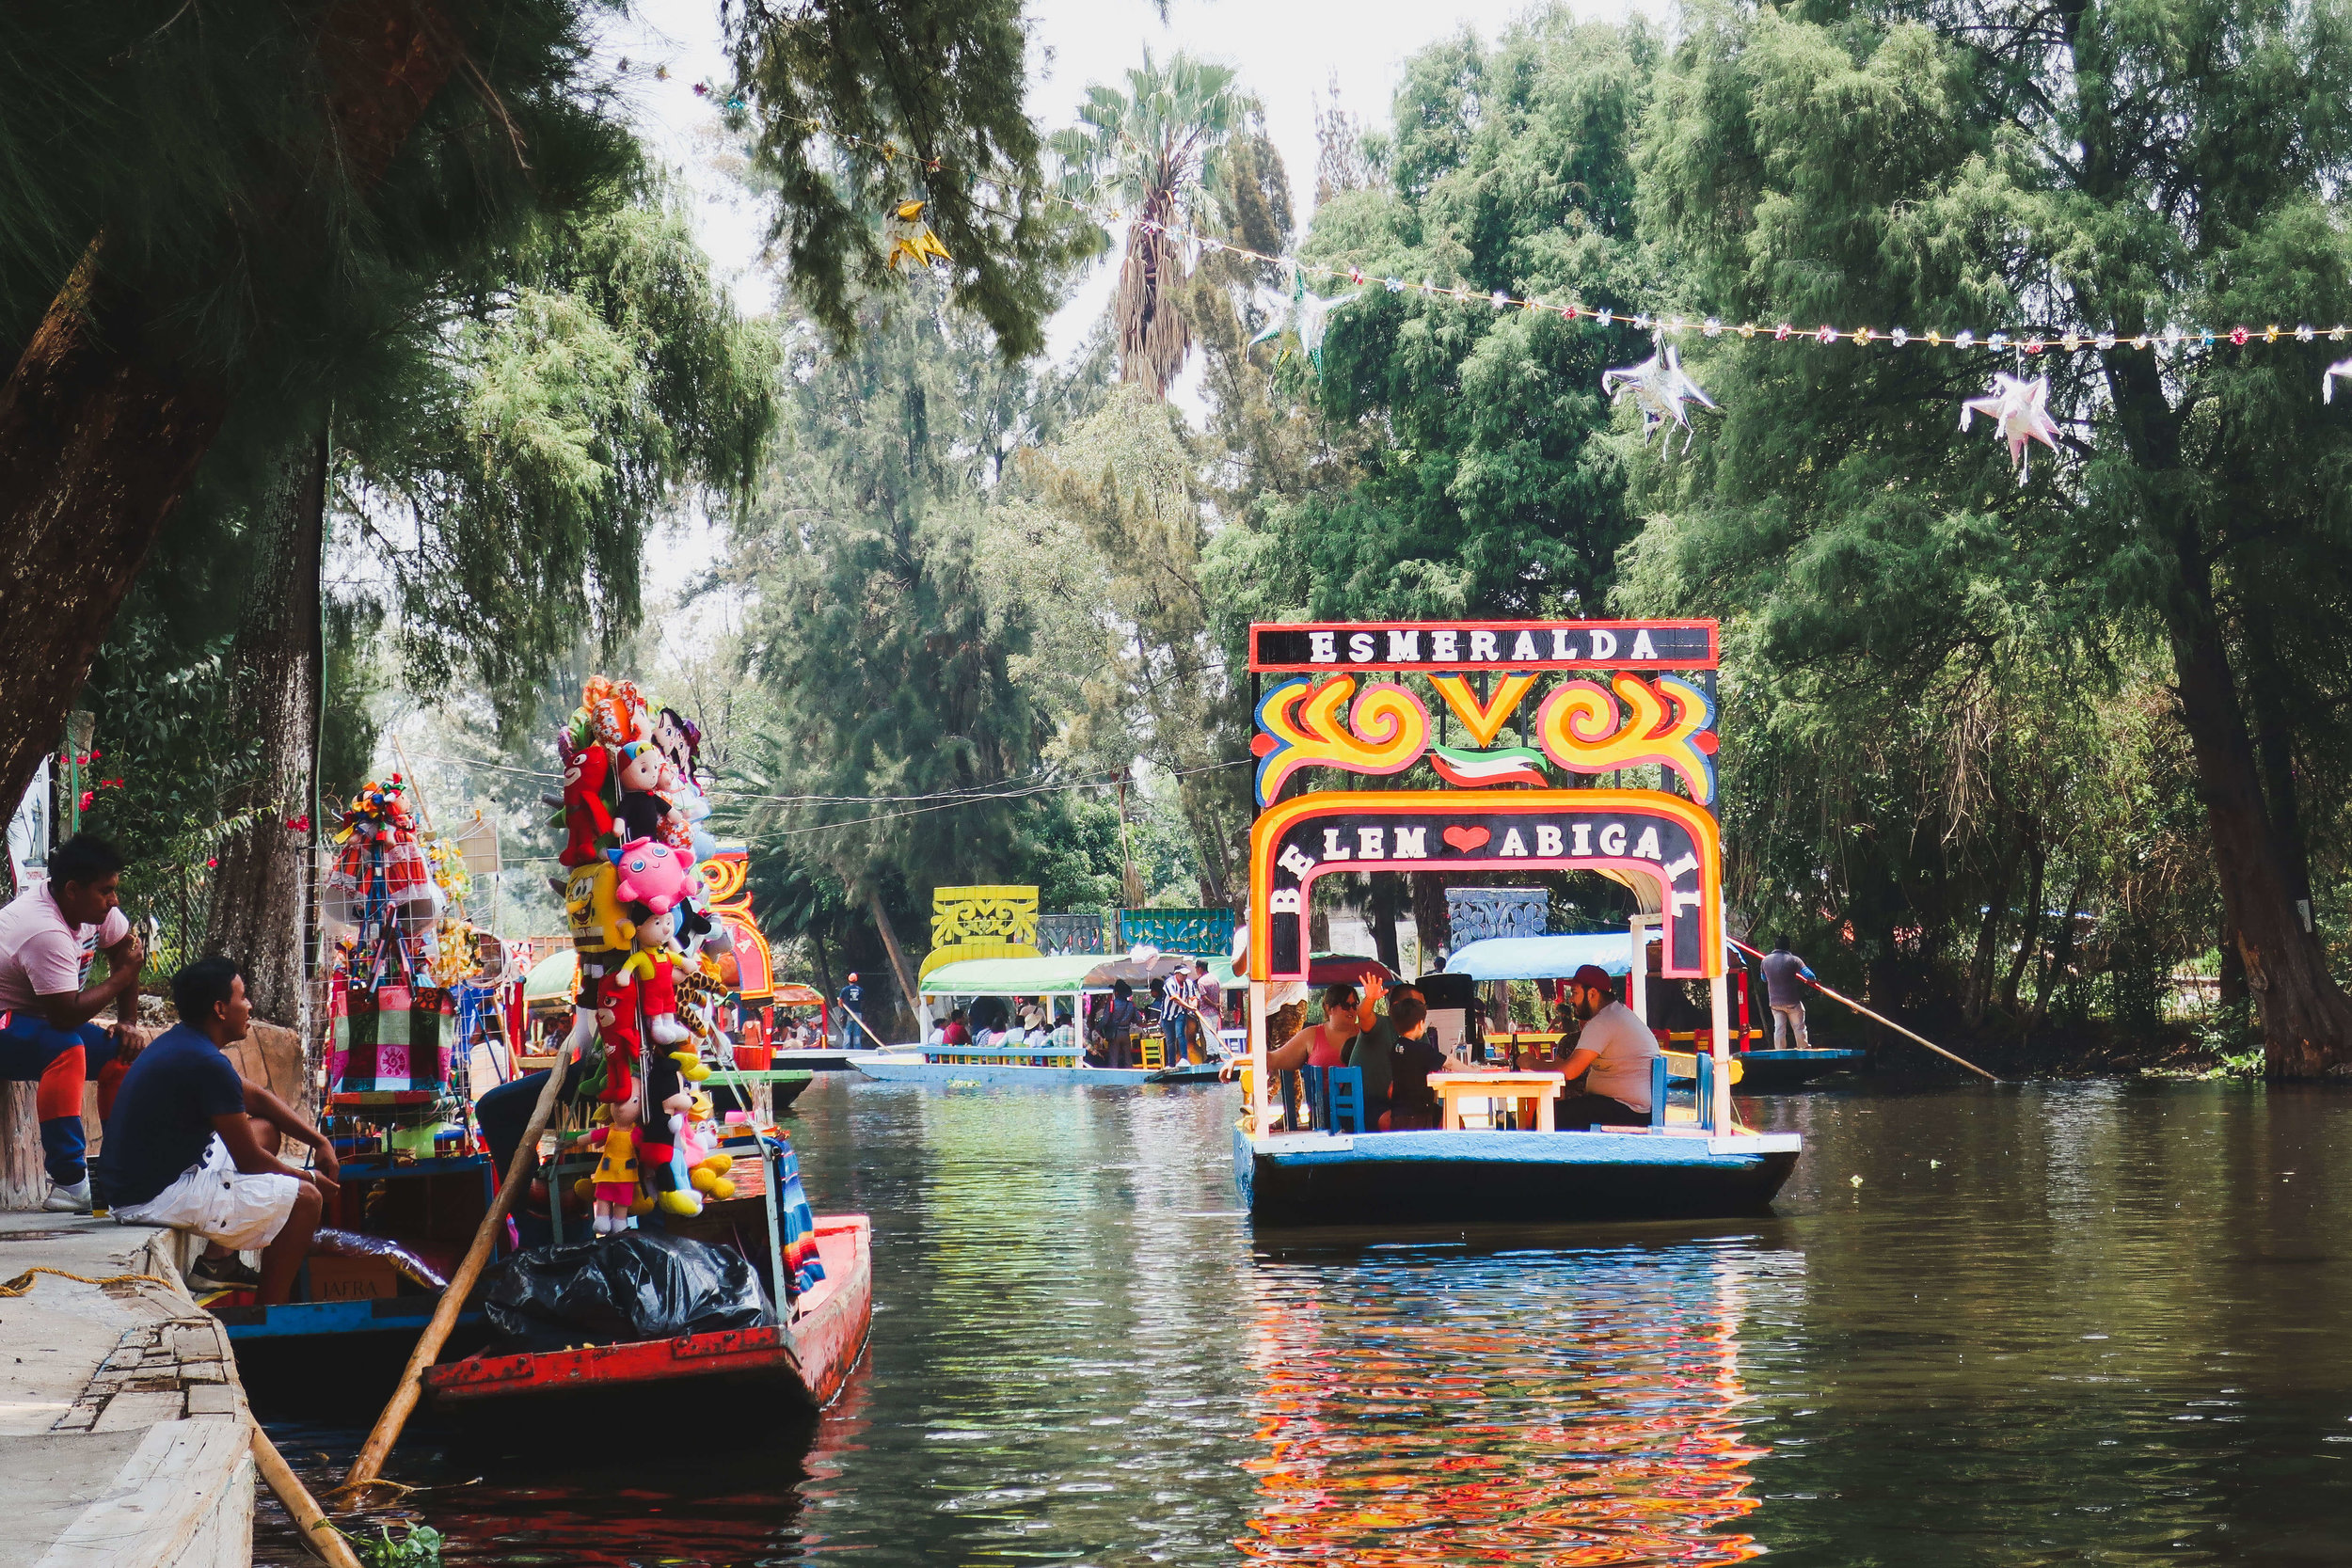 A colorful boat rows through the canals of Xochmilco on a Mexico City weekend afternoon